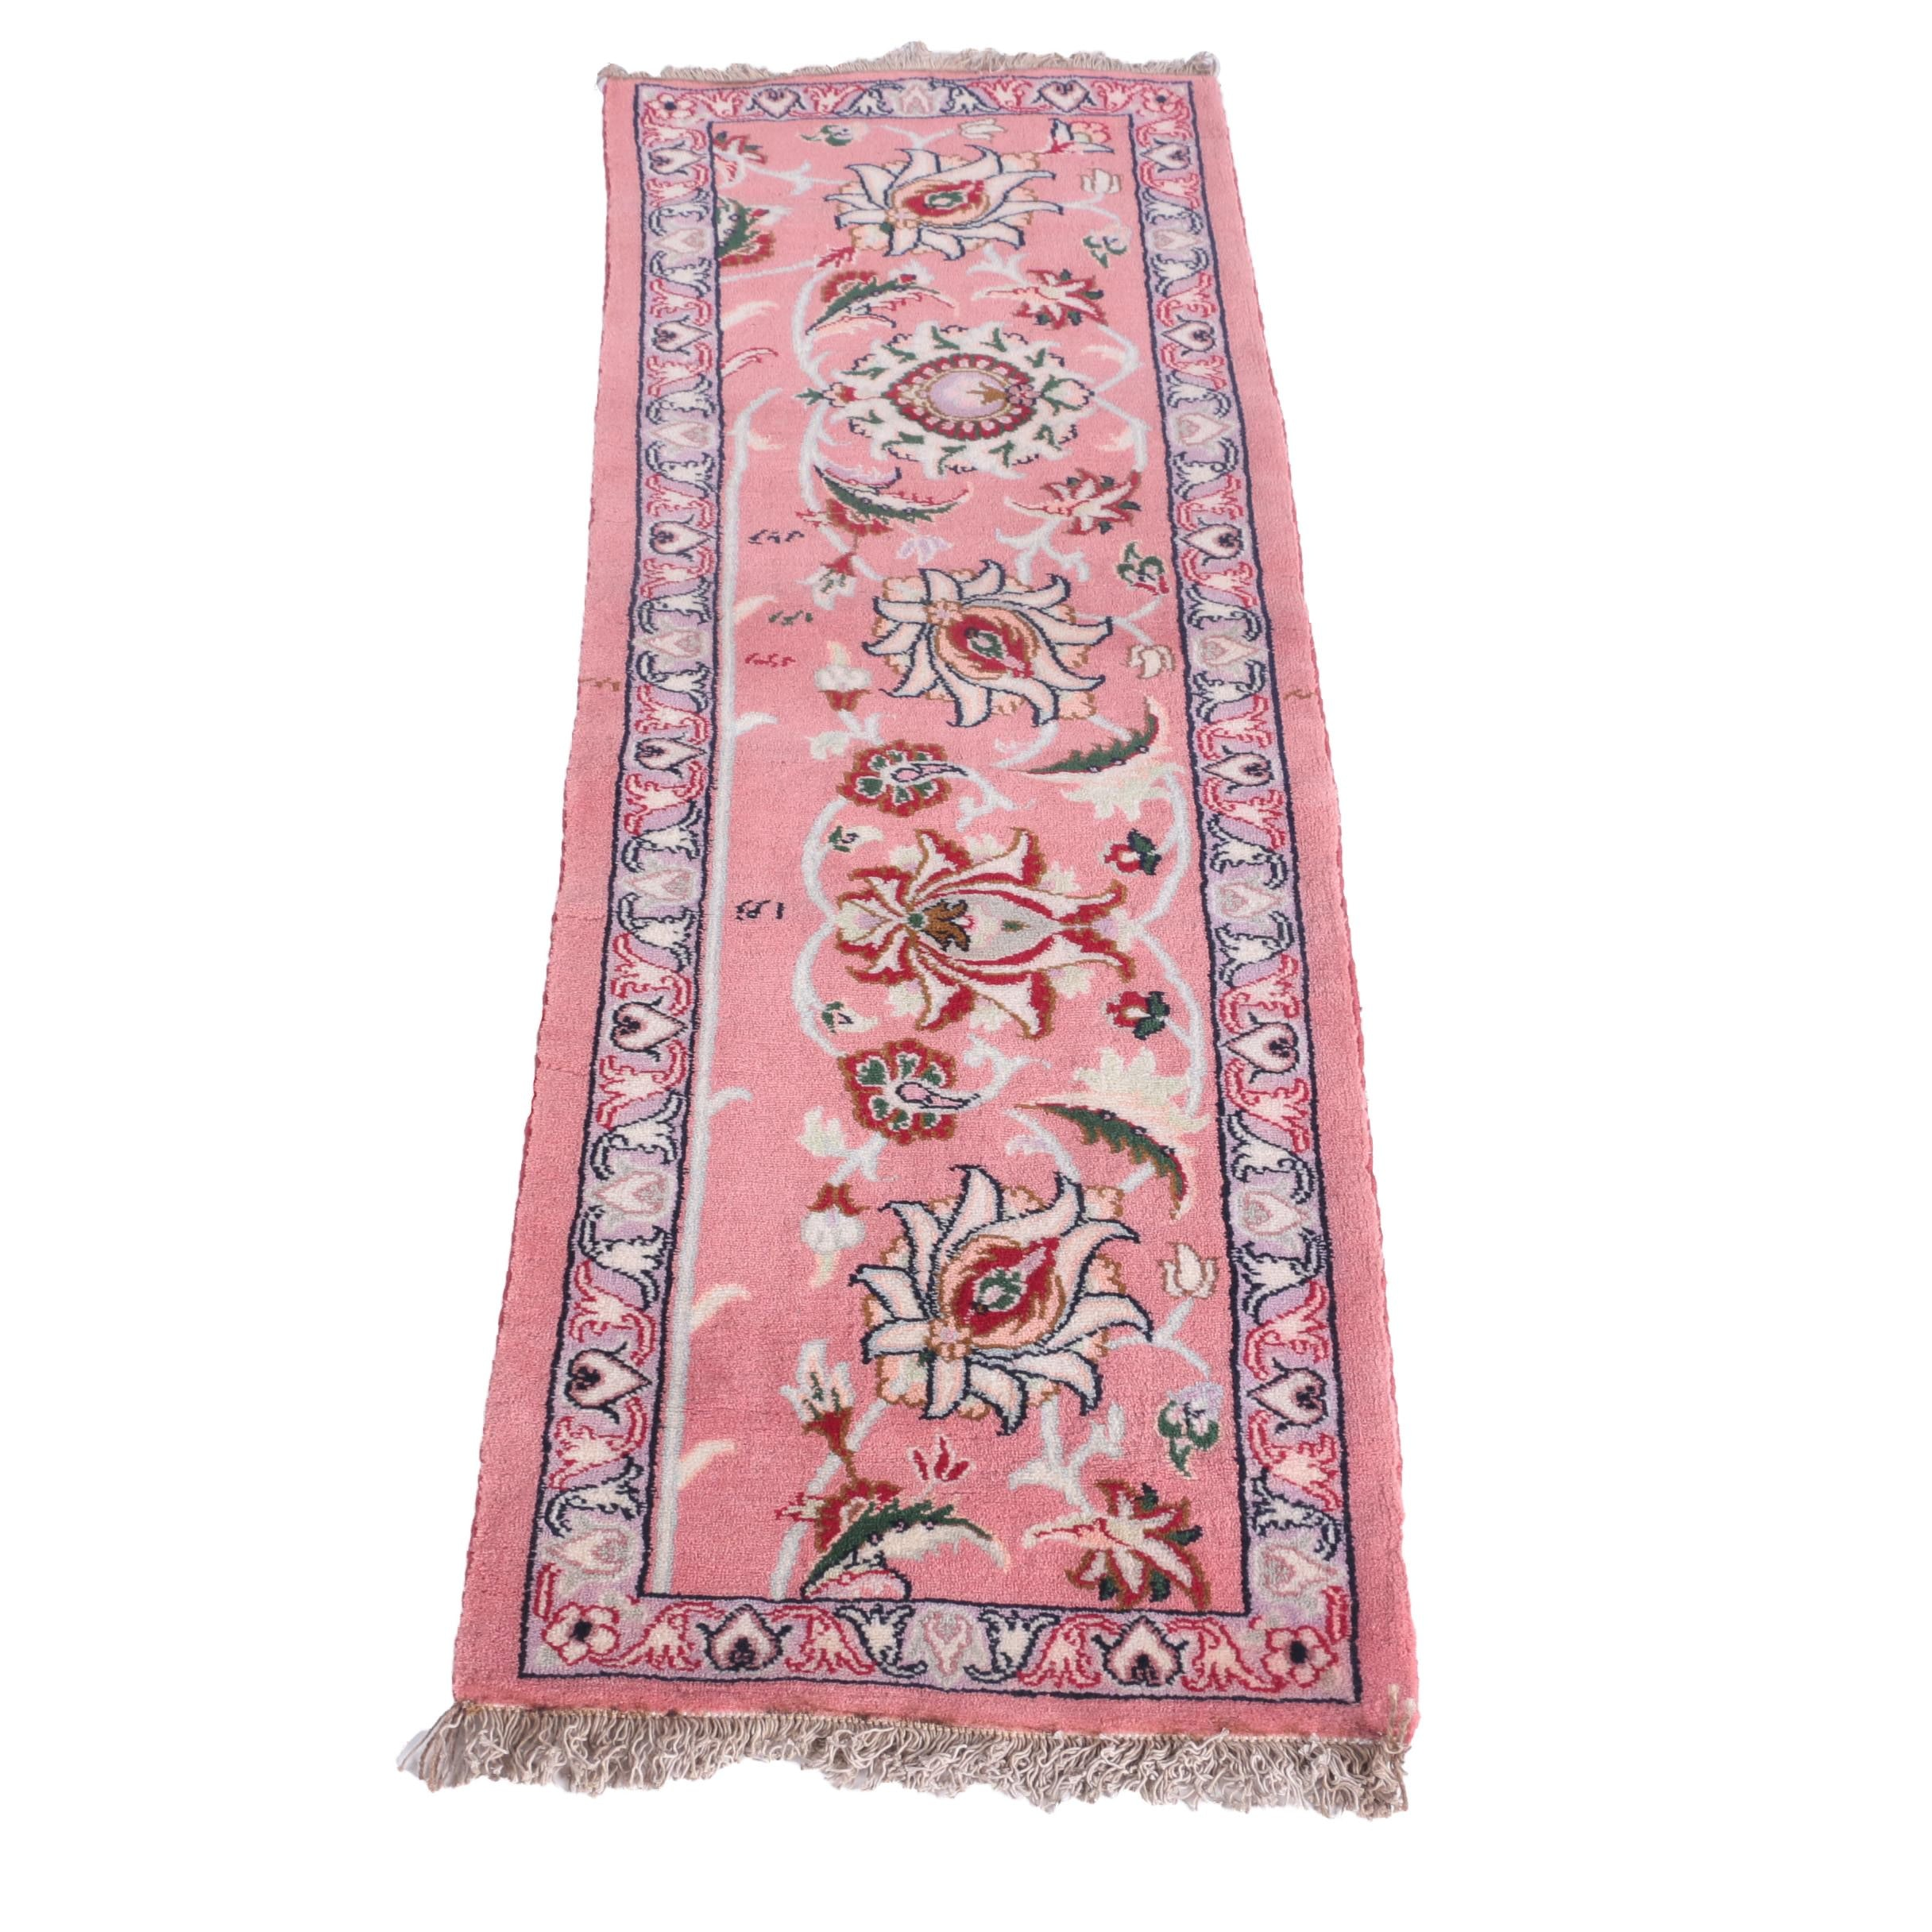 Hand-Knotted Persian Pink Carpet Runner